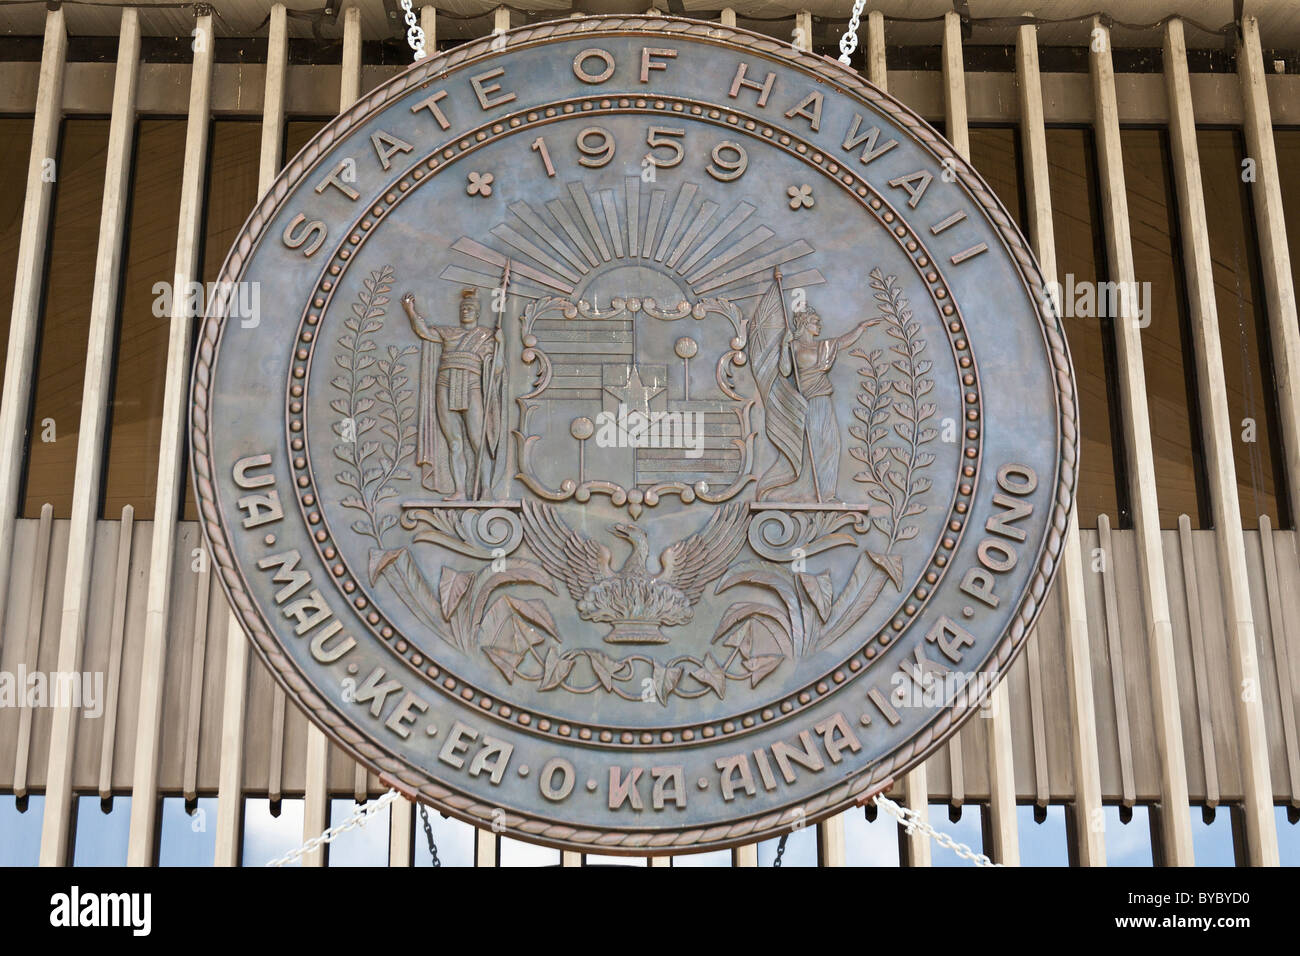 Seal of the State of Hawaii. The large bronze medallion that hangs from the state legislature building - Stock Image